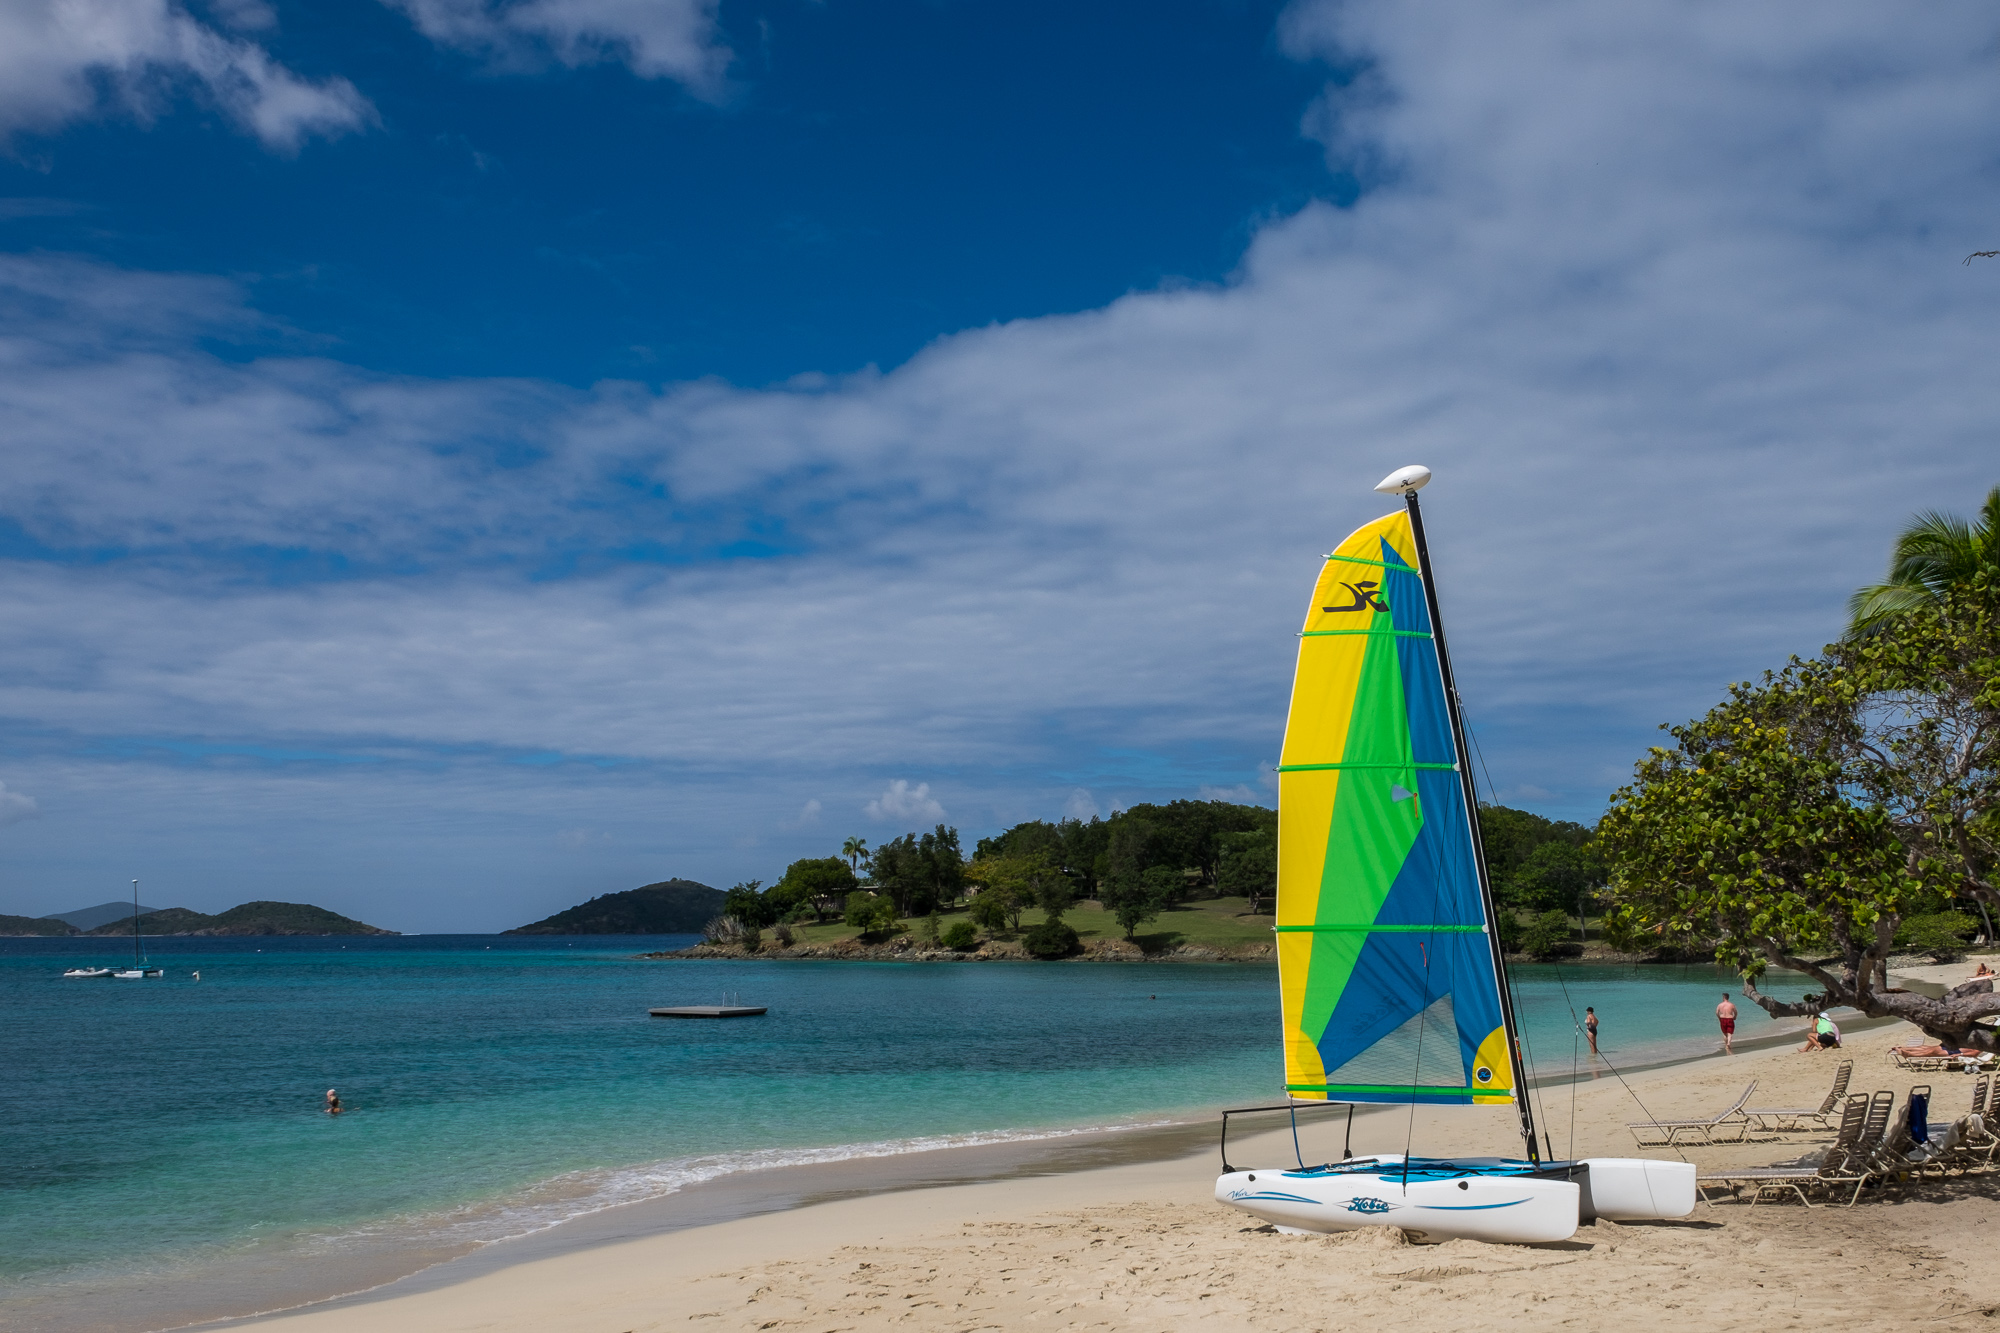 The Caneel Bay beaches were among the best on the island.